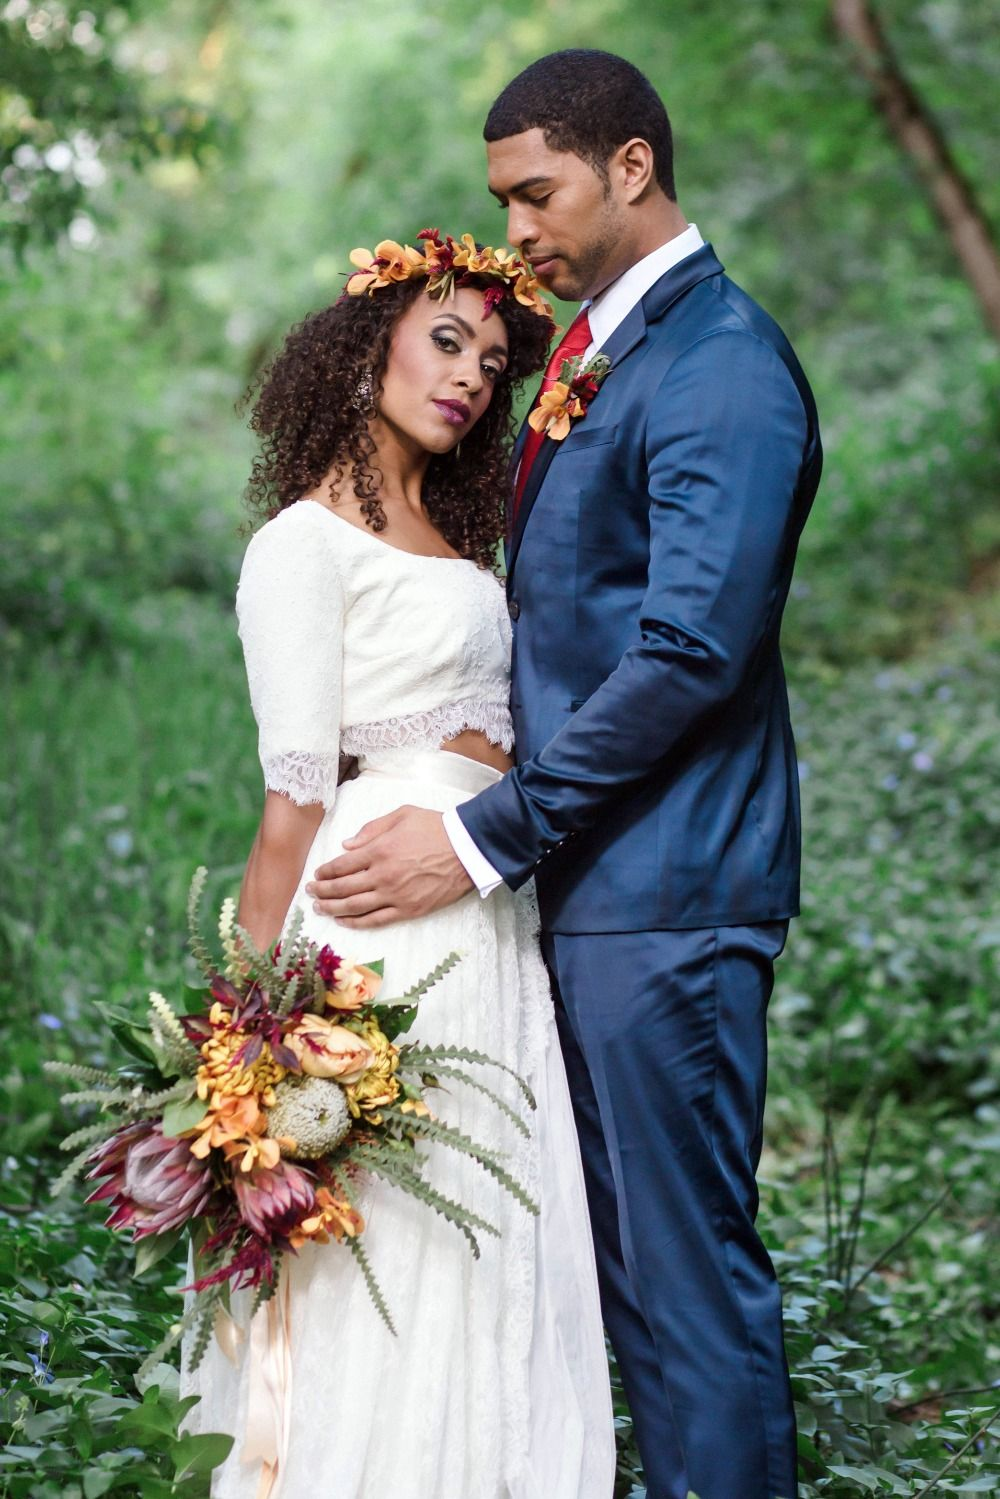 Eclectic Boho Wedding Ideas | Matrimonial sites, Grooms and Weddings